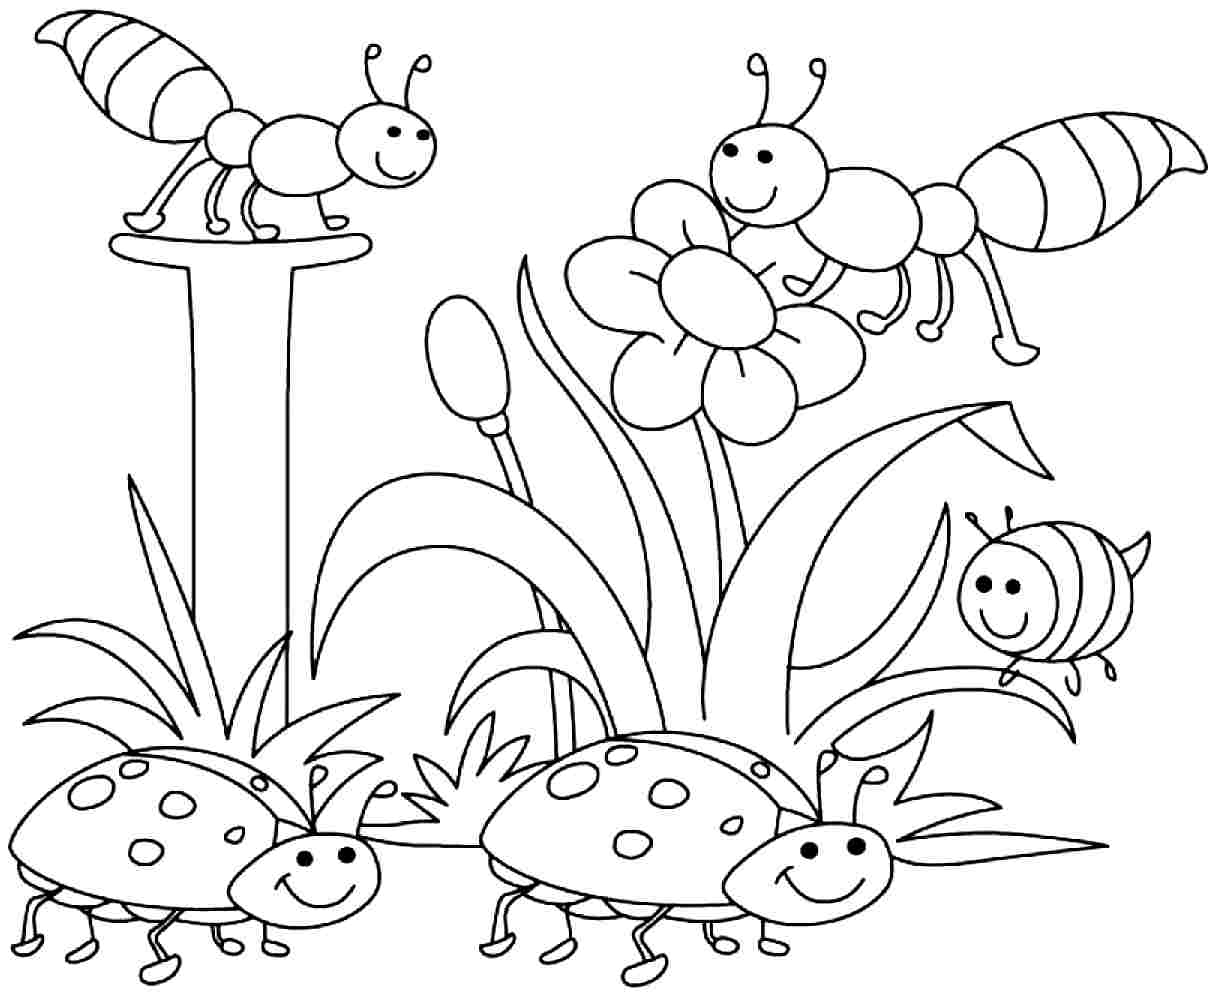 1216x997 Spring Coloring Pages Natural Prin Popular Spring Coloring Pages